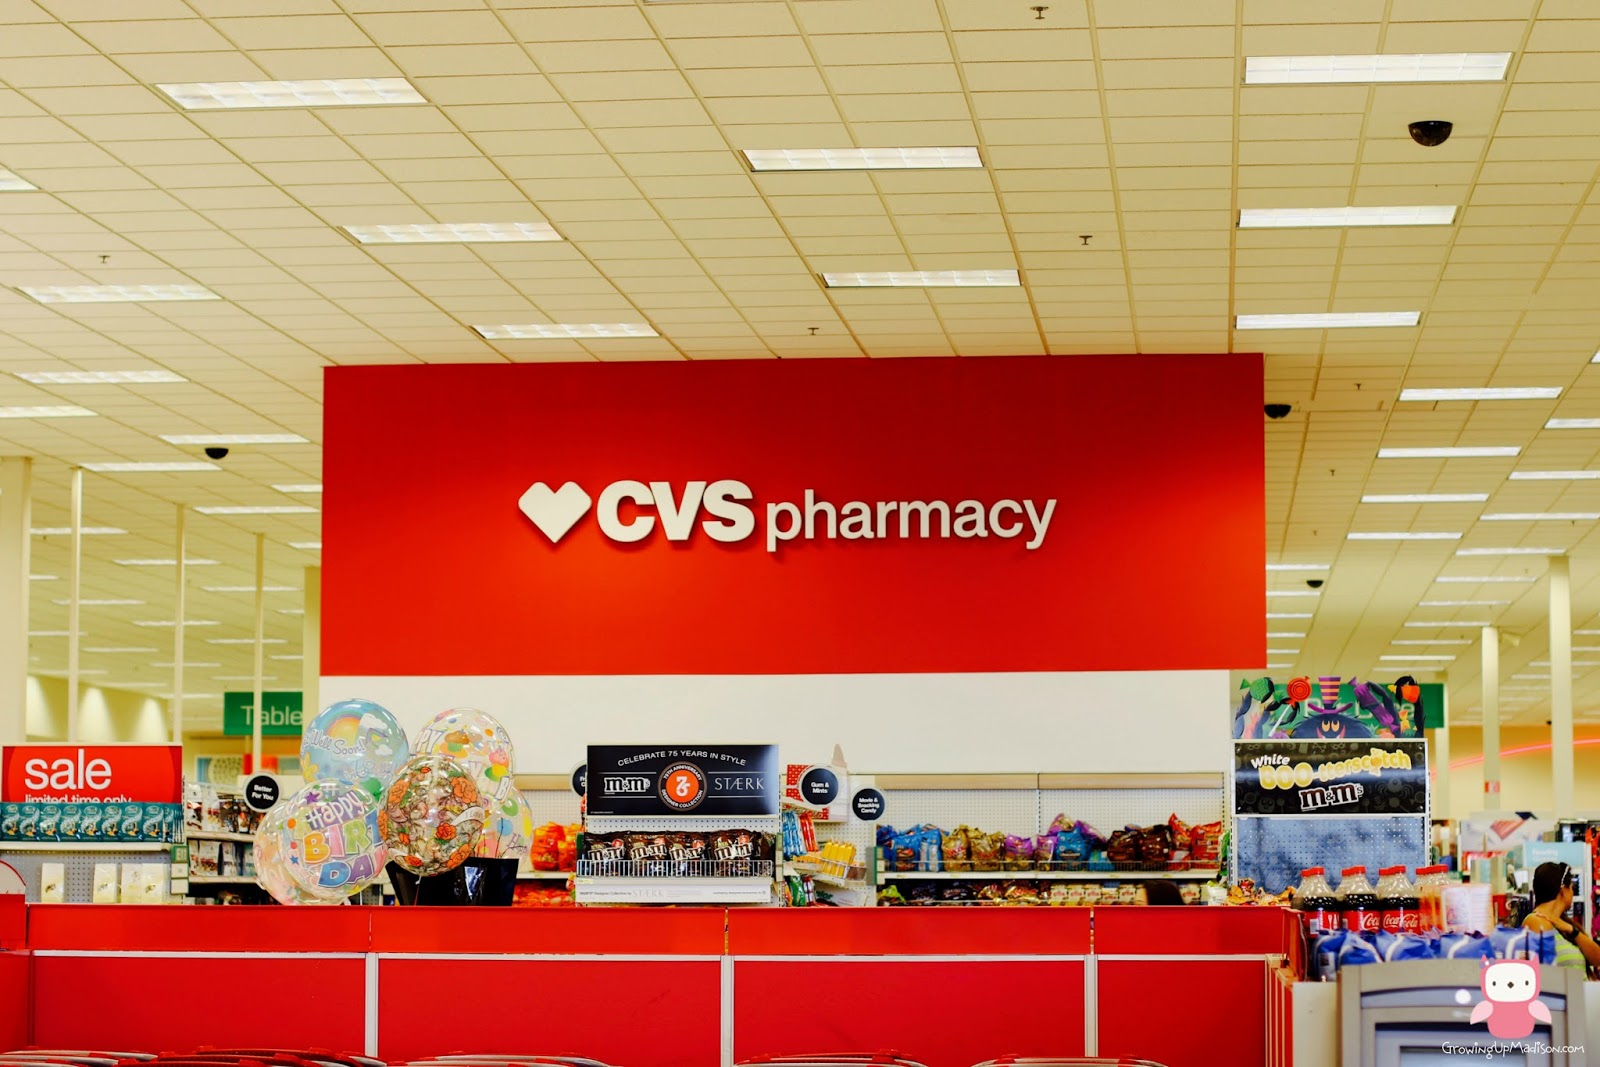 Get Your Flu Shot This Year at CVS Pharmacy